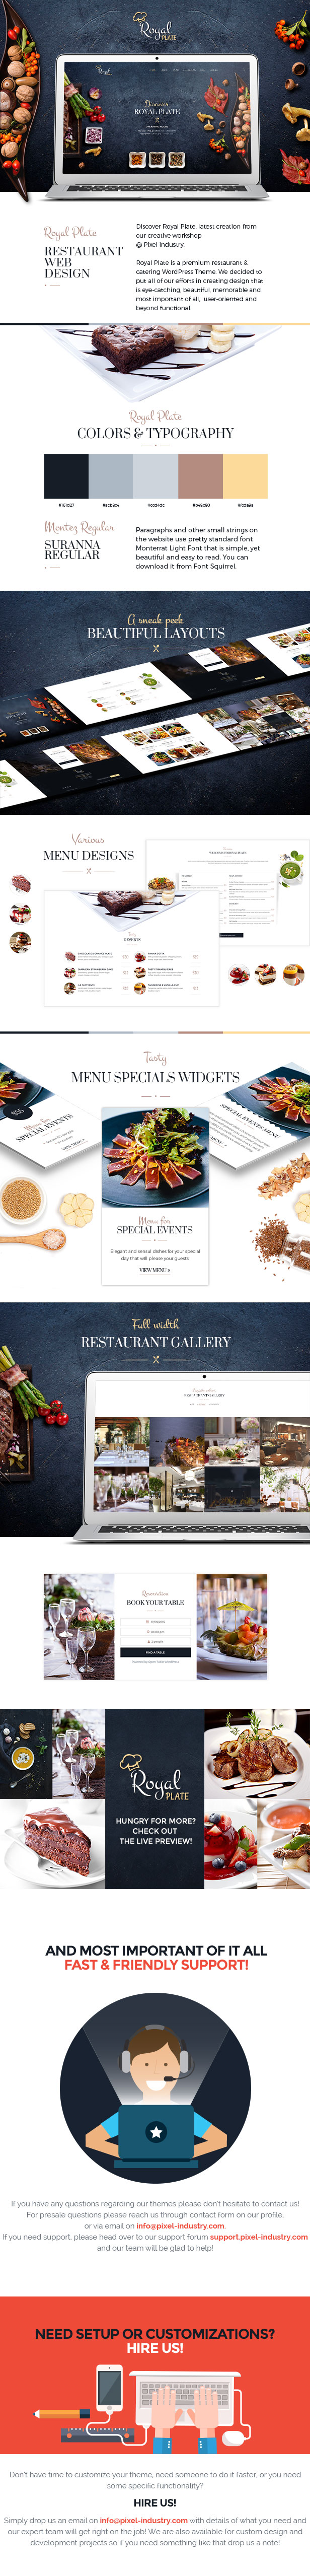 Royal Plate Restaurant Food Cuisine and Catering HTML Template